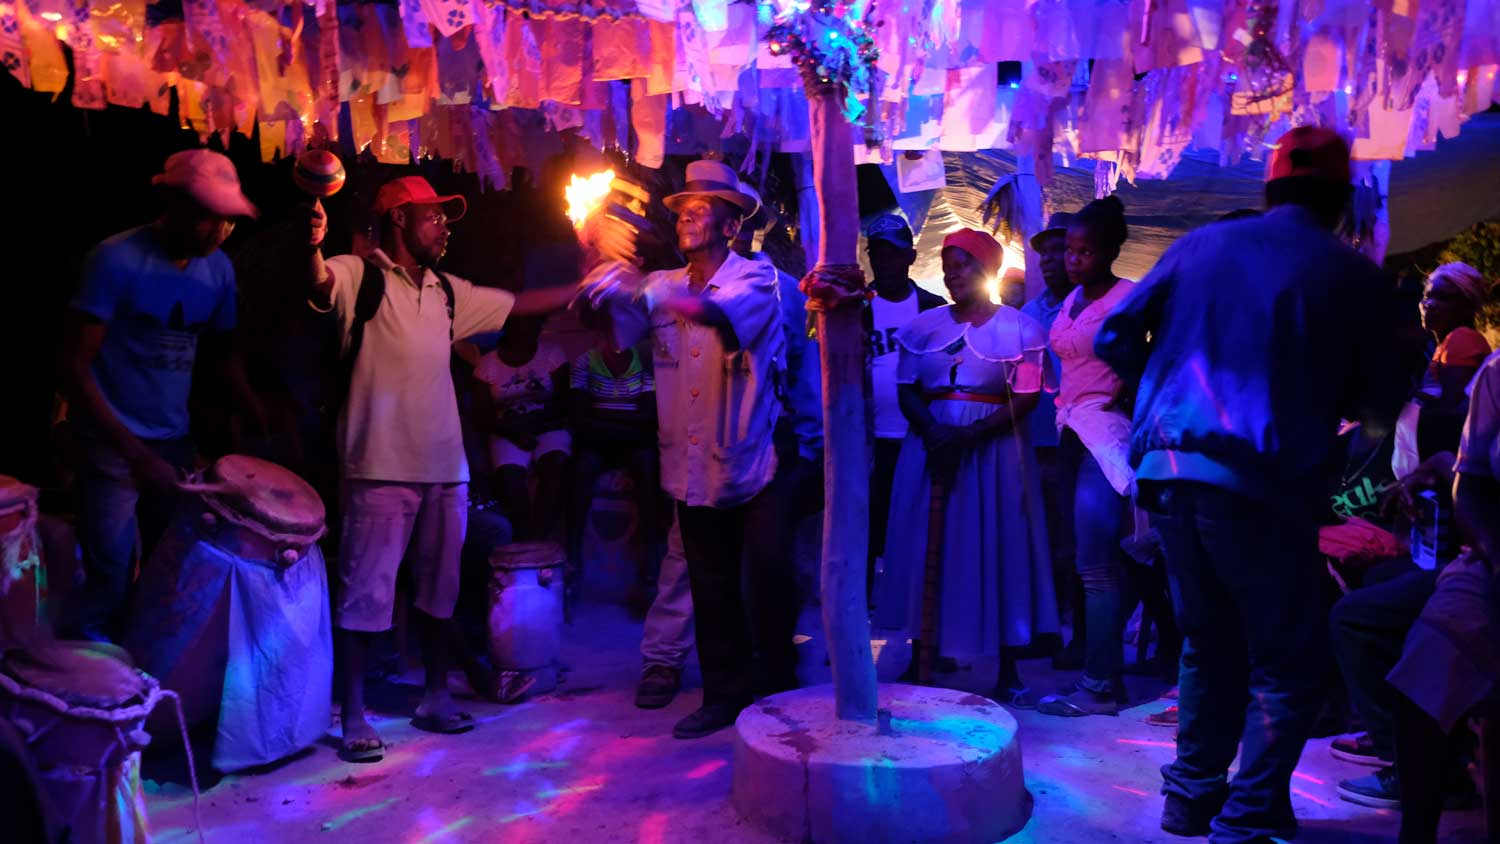 People gather around for a Vodou ceremony inside a Haitian Vodou temple in Petavie